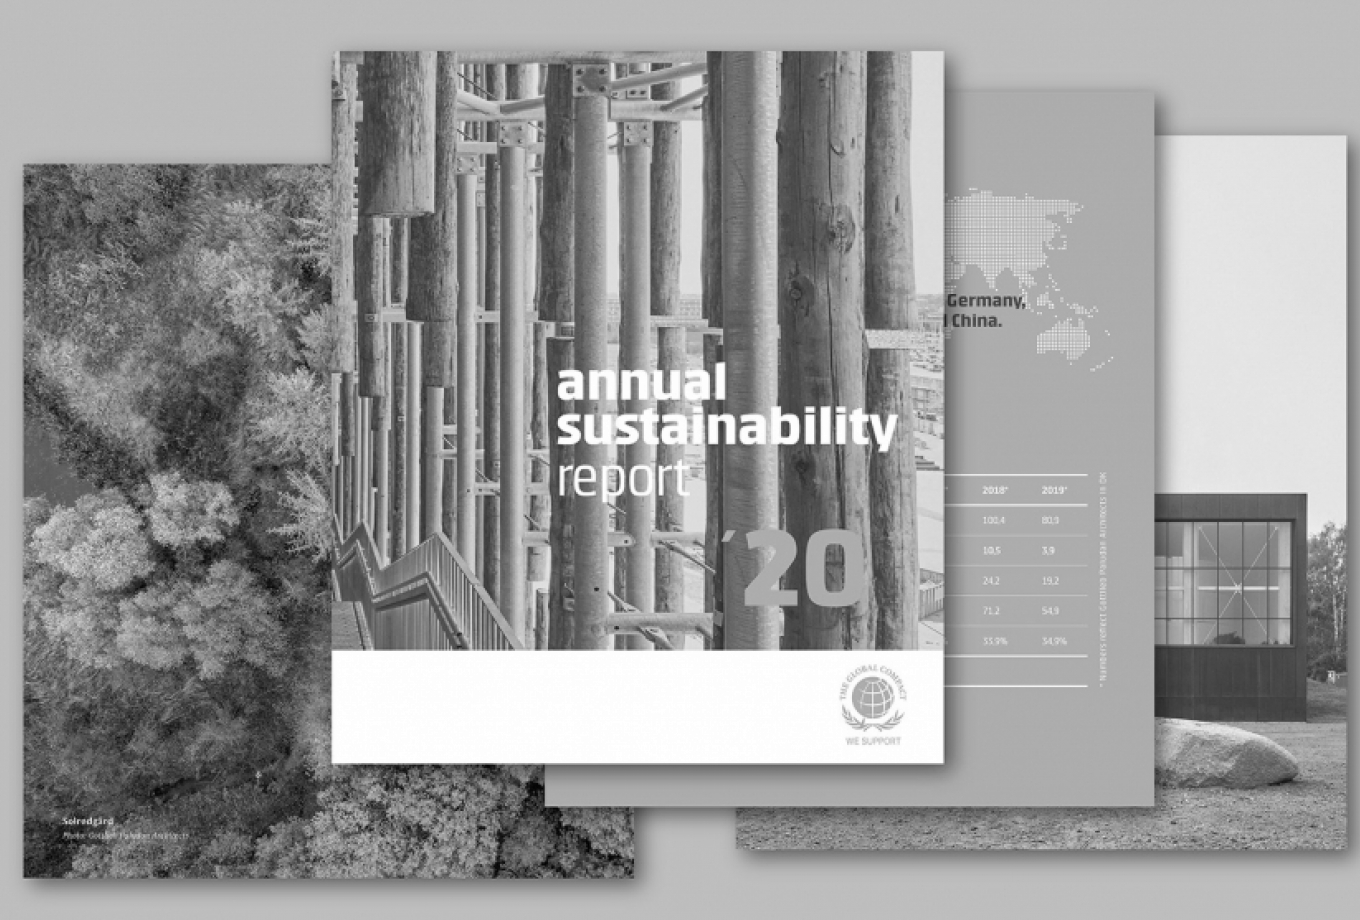 gottlieb_paludan_architects_annual_sustainability_report_cop_some_collage_1